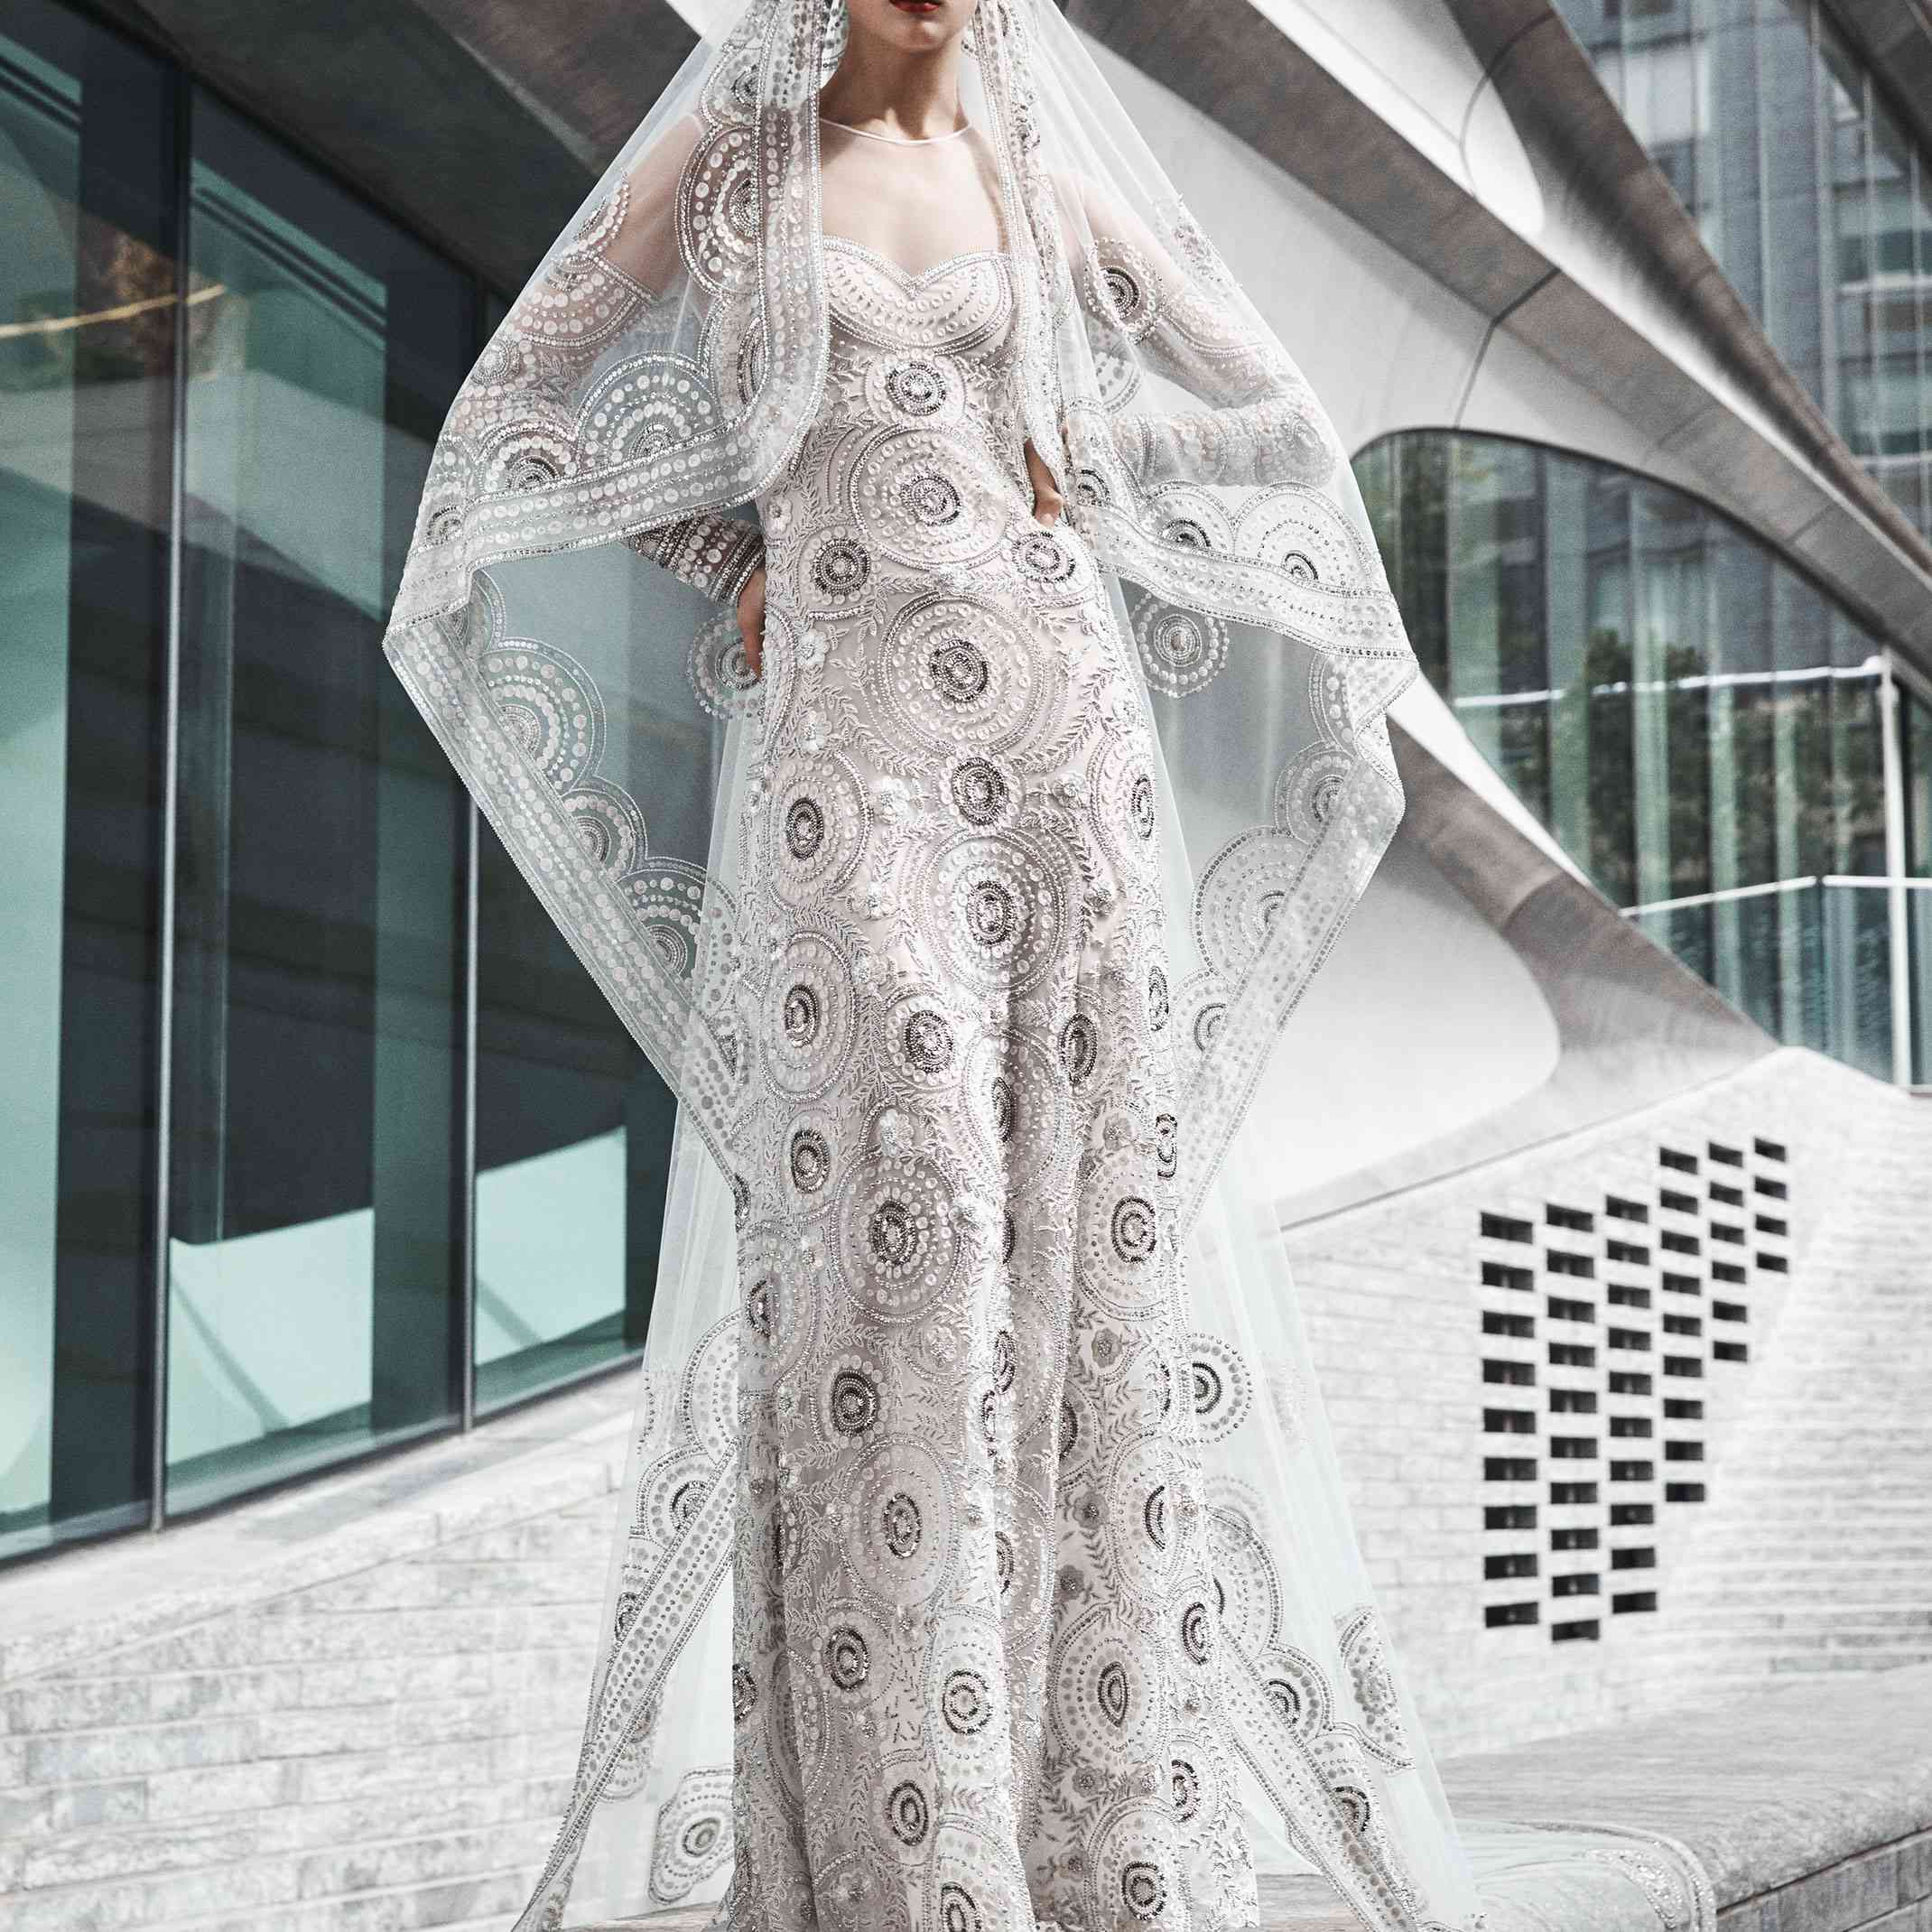 Model in gown with circular sequin embroidery